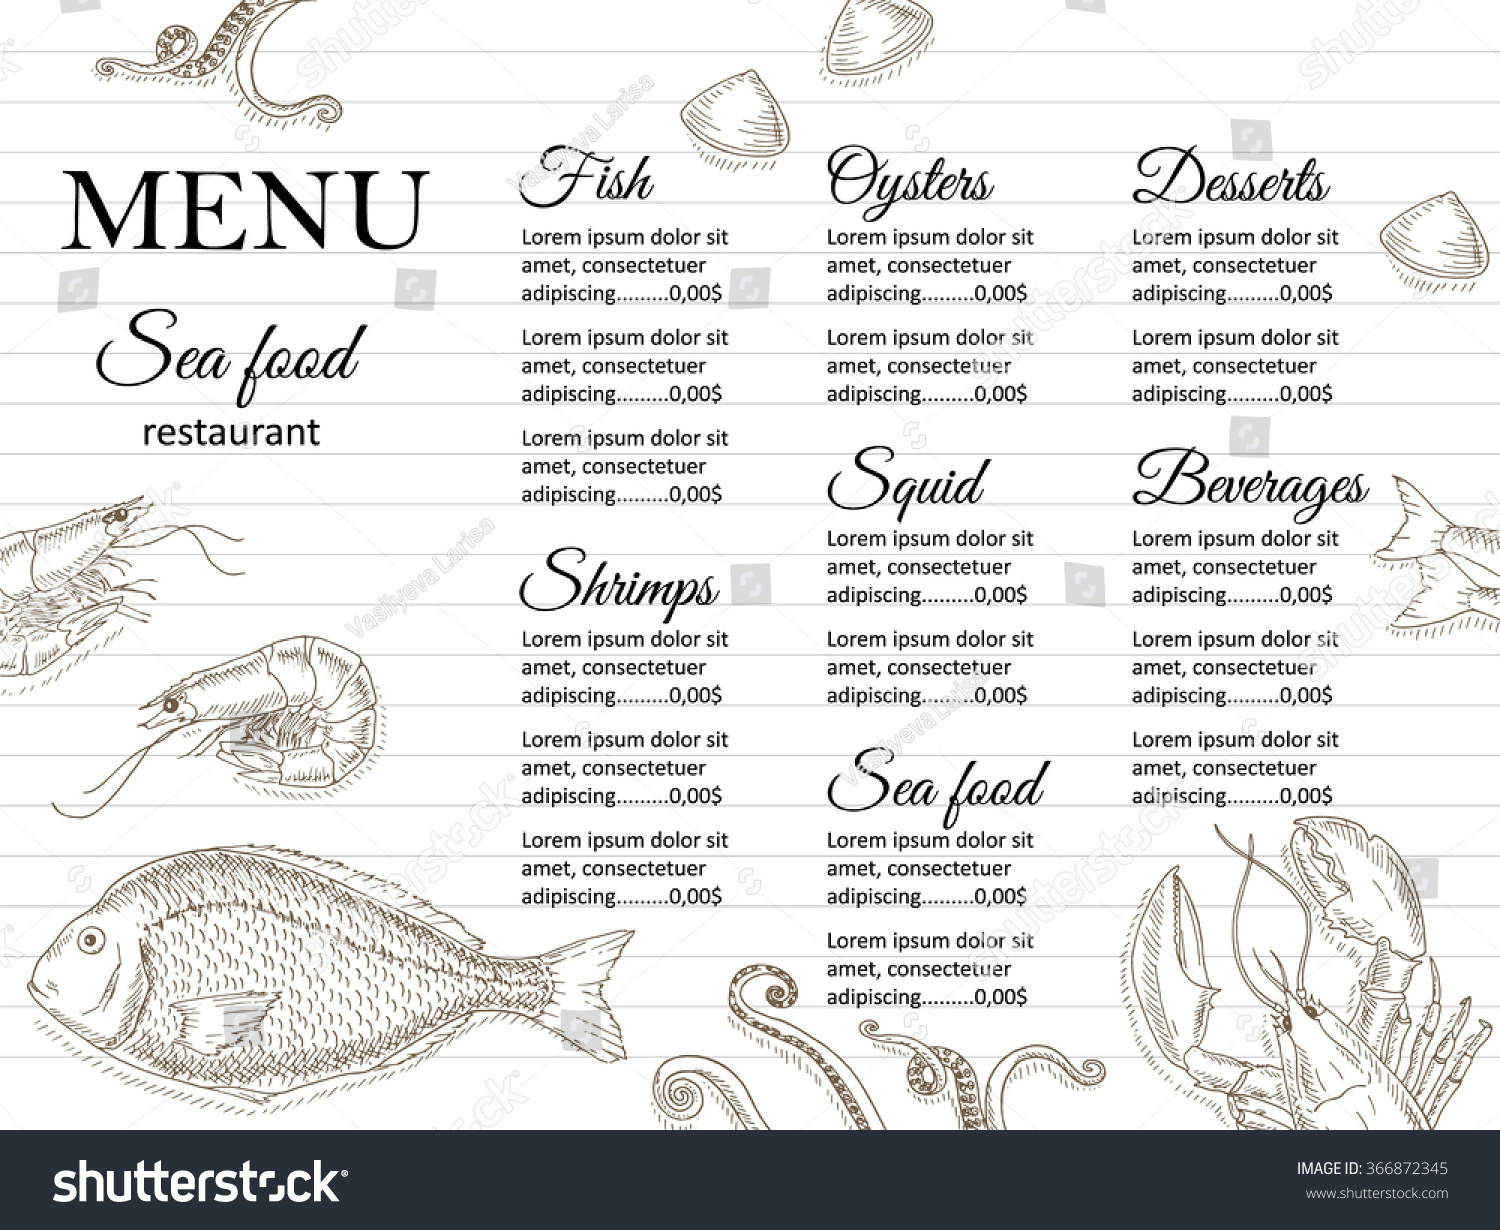 White Bear Restaurant Menu